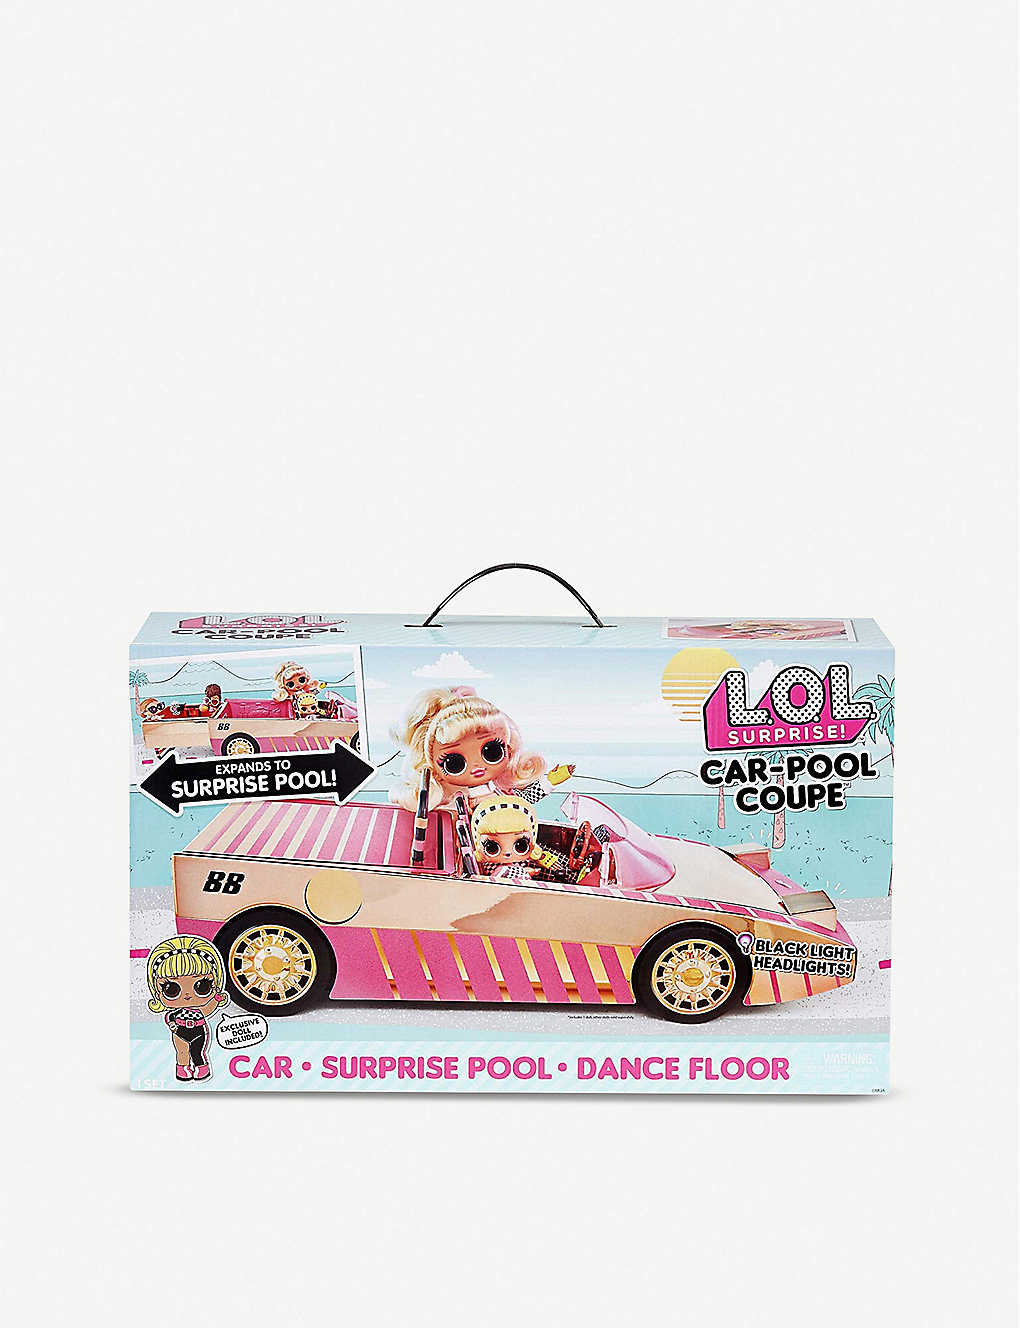 L.O.L. SURPRISE: Car-pool Coupe set